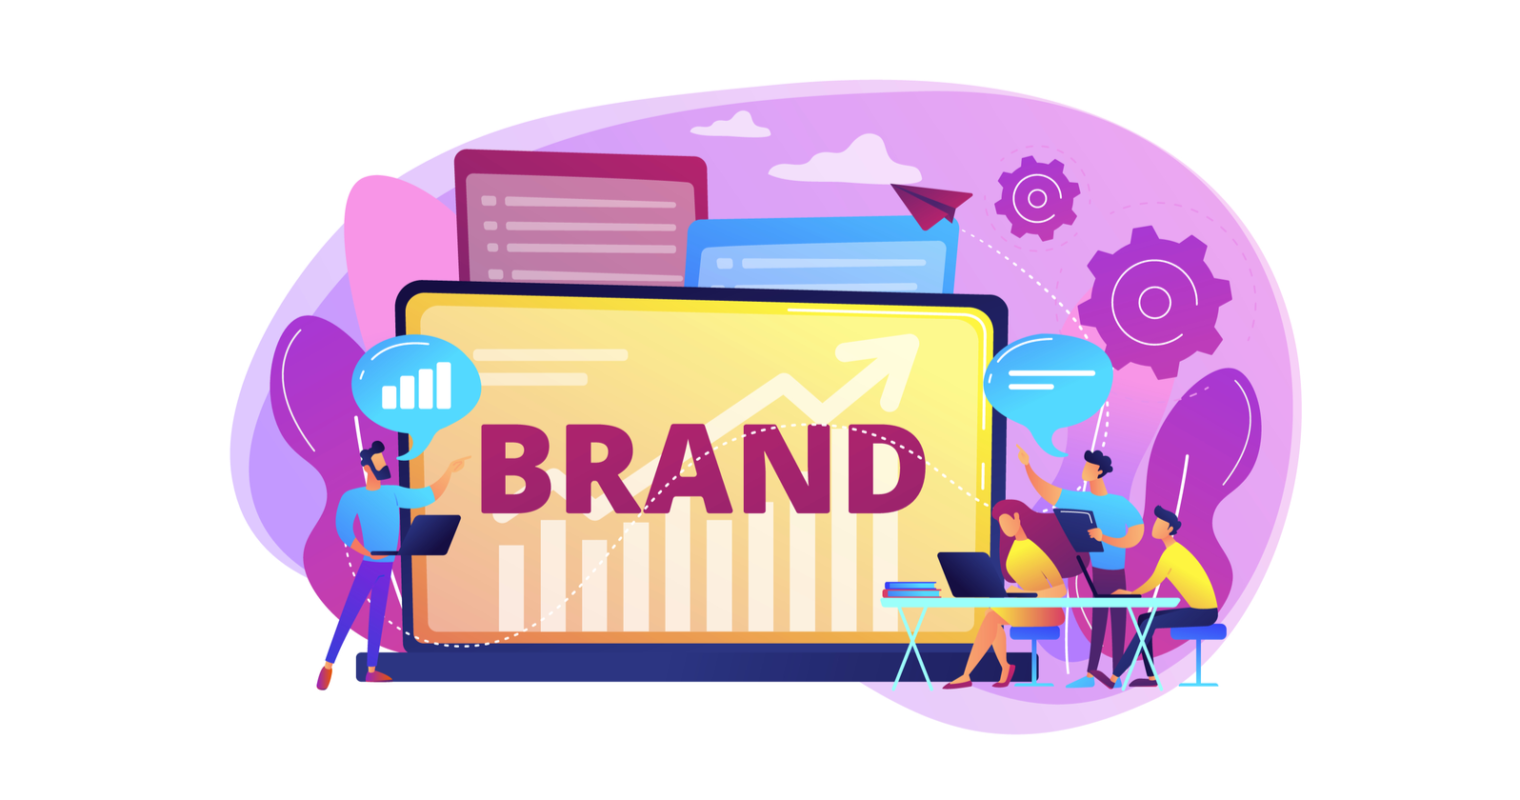 The Power of Impression-Based Campaigns to Grow Your Brand